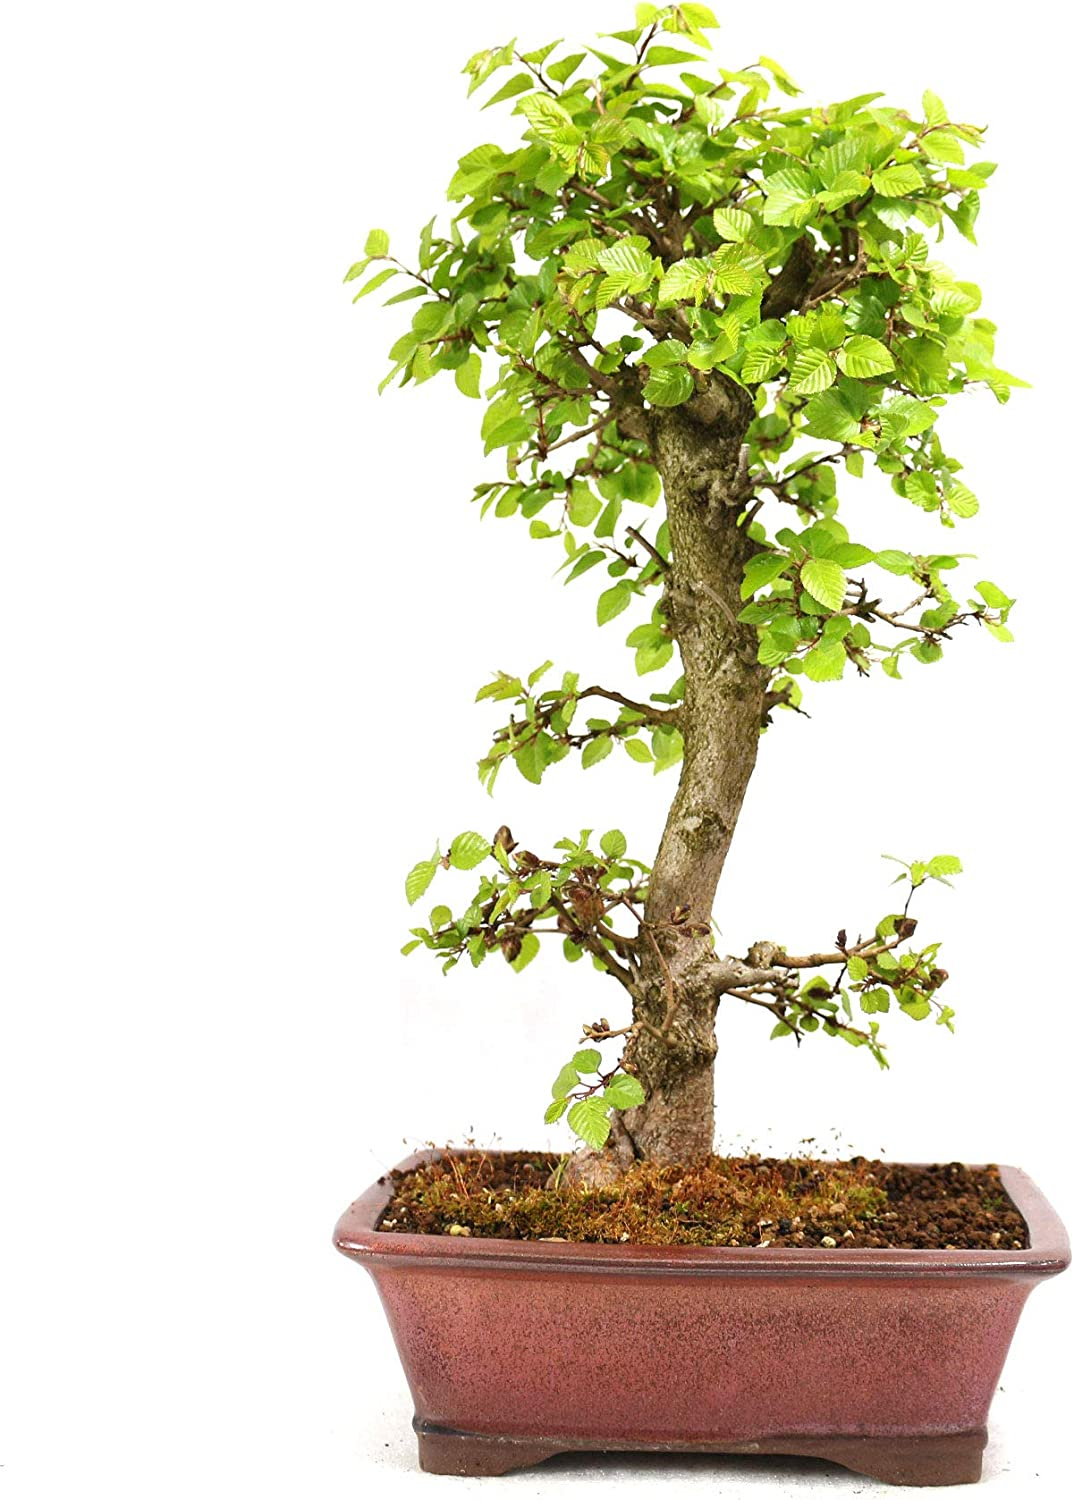 Japanese Hornbeam Carpinus Laxiflora Outdoor Bonsai 16 Years Height 39 Cm Amazon Co Uk Garden Outdoors